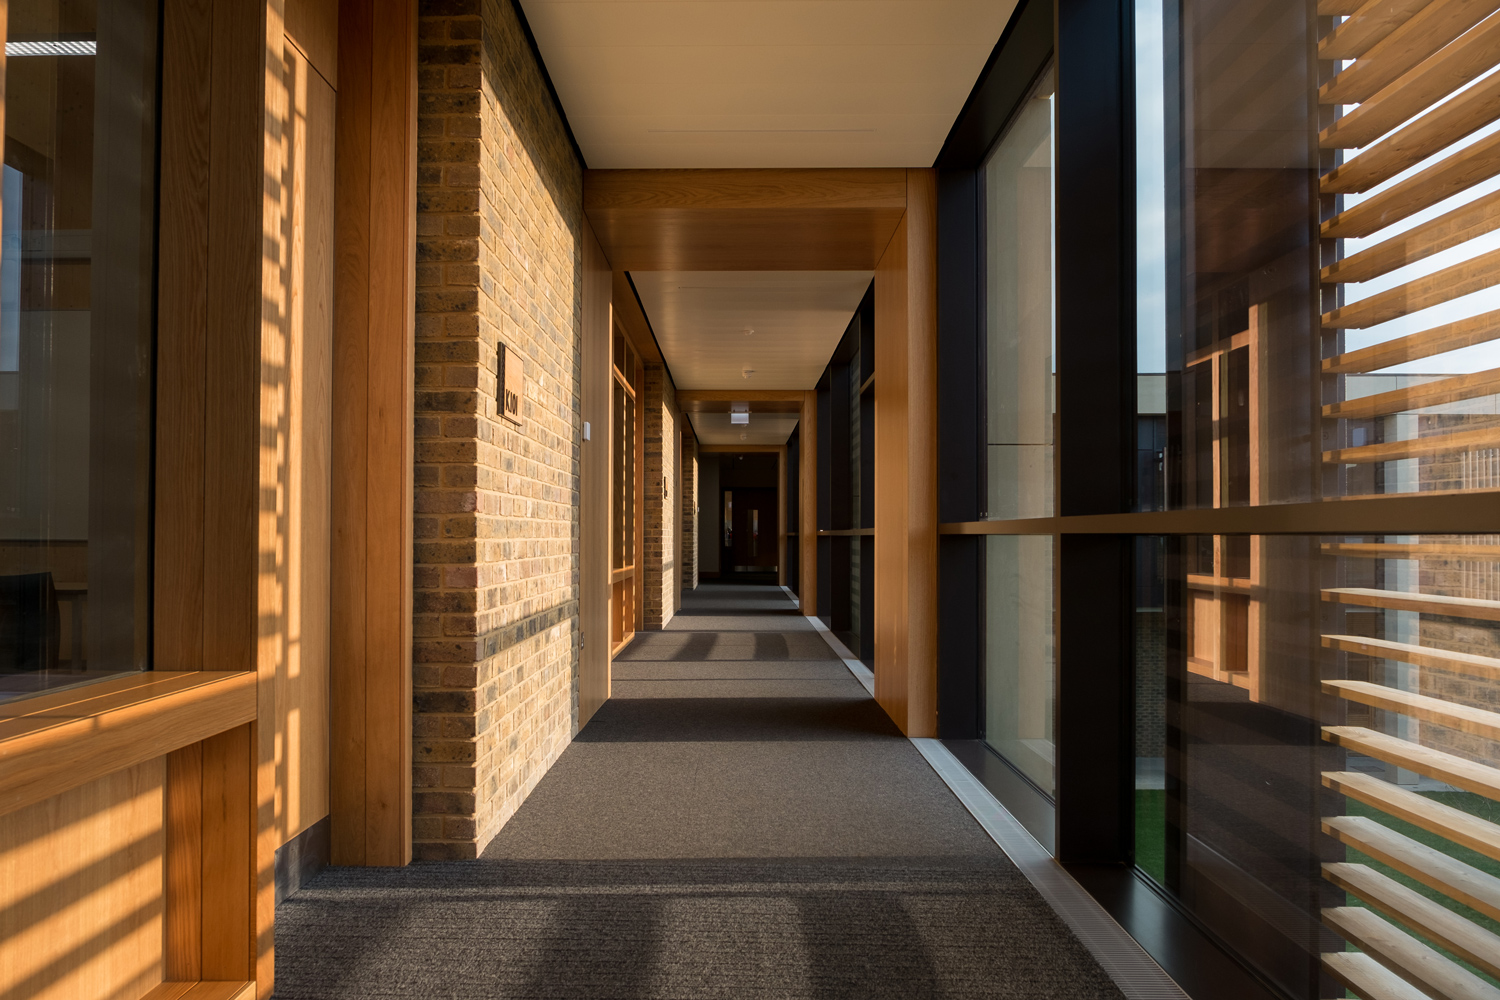 Corridor view of Charterhouse Science